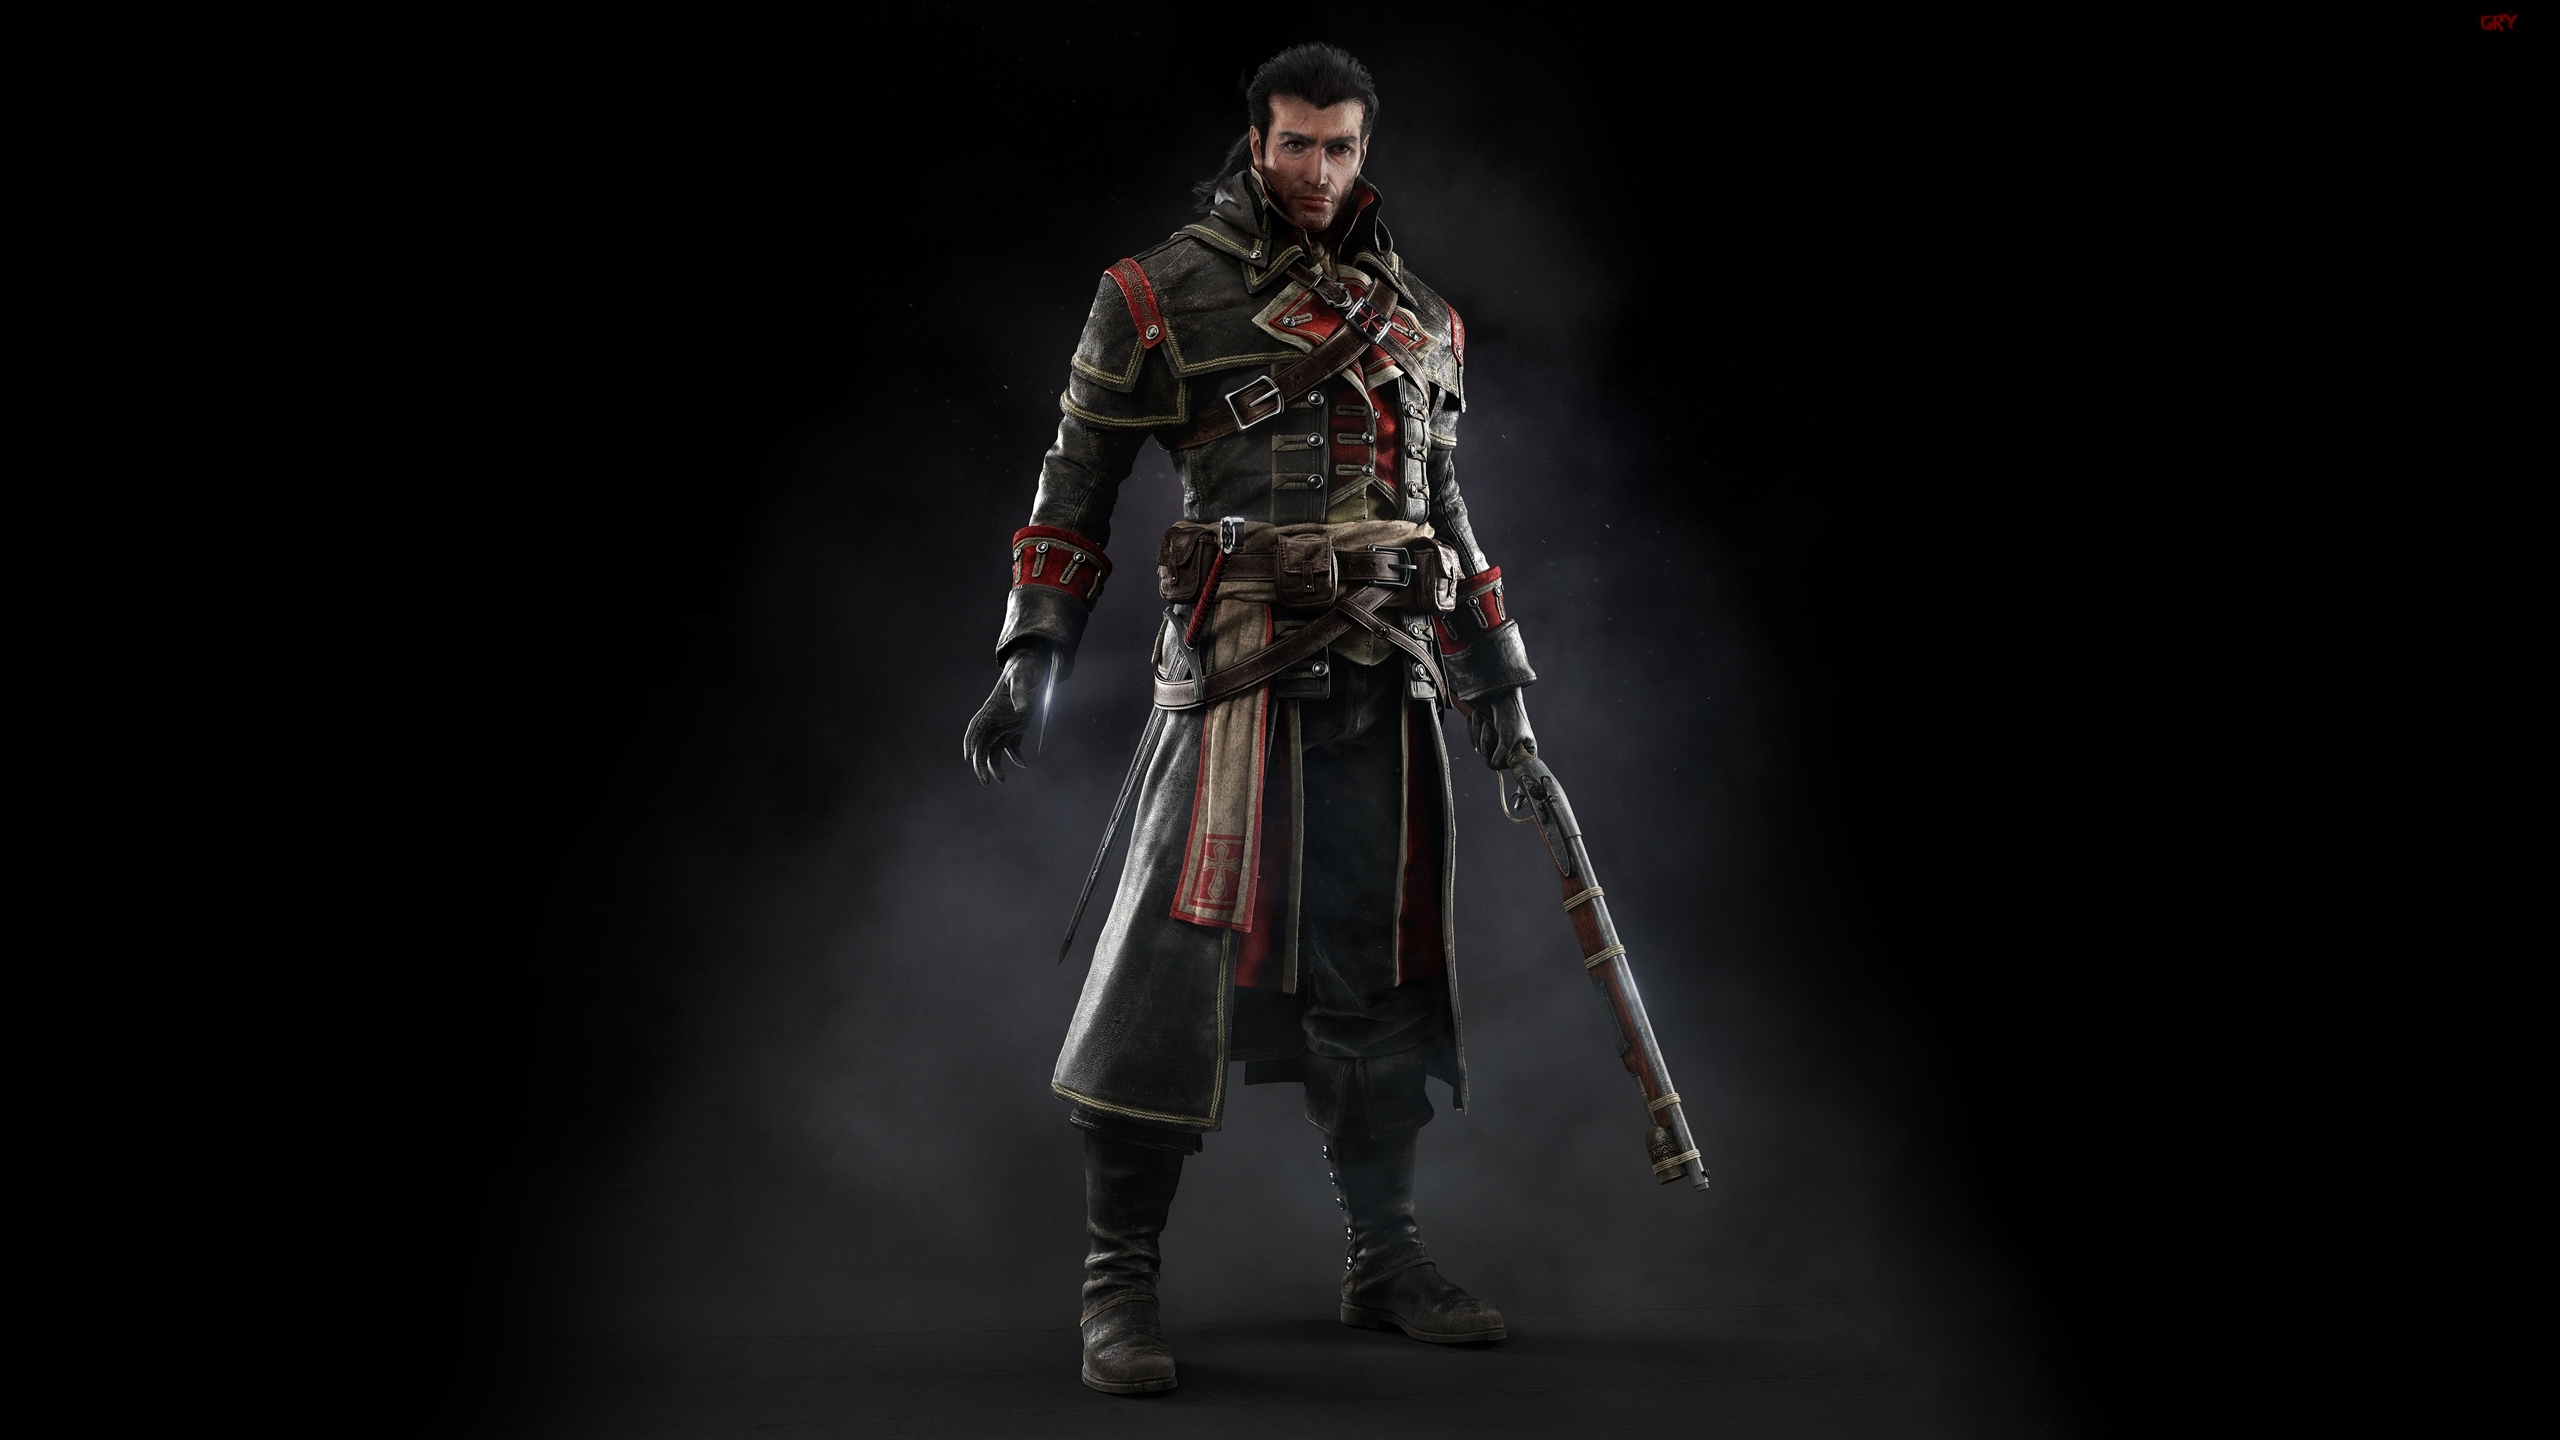 Assassins Creed Rogue, Shay Cormac, Wiatrówka, Ukryte, Ostrza